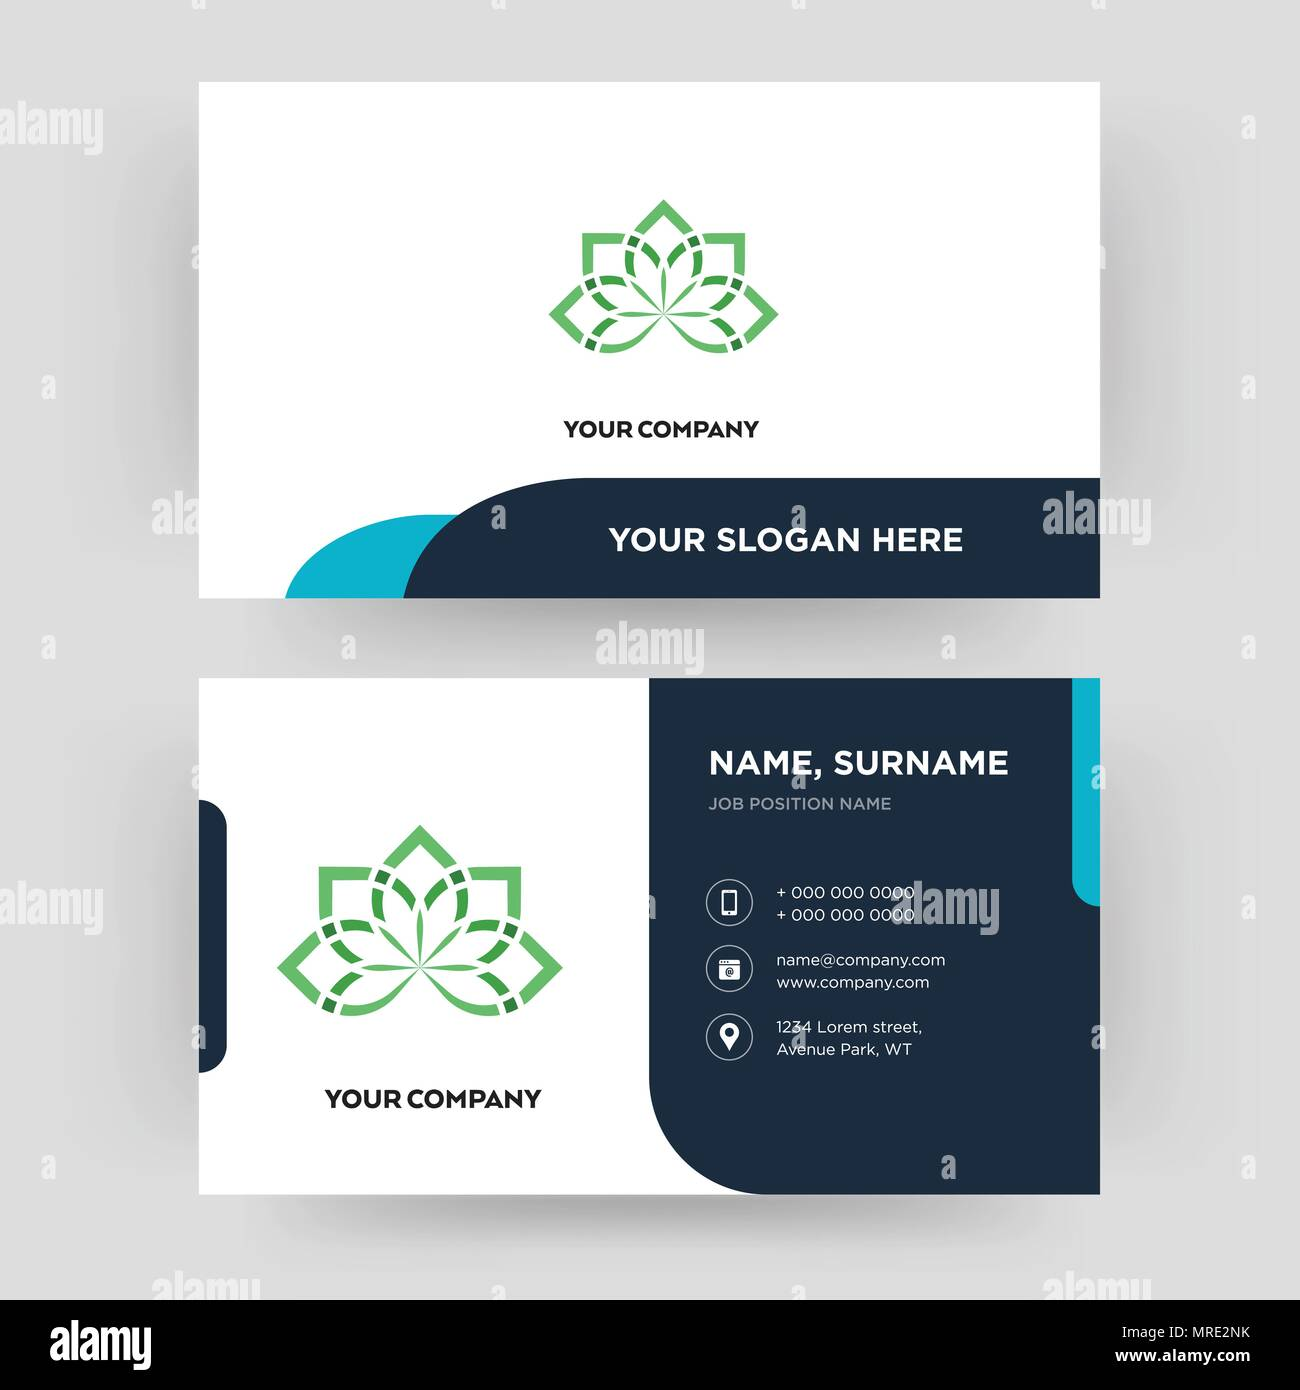 Holistic business card design template visiting for your company holistic business card design template visiting for your company modern creative and clean identity card vector colourmoves